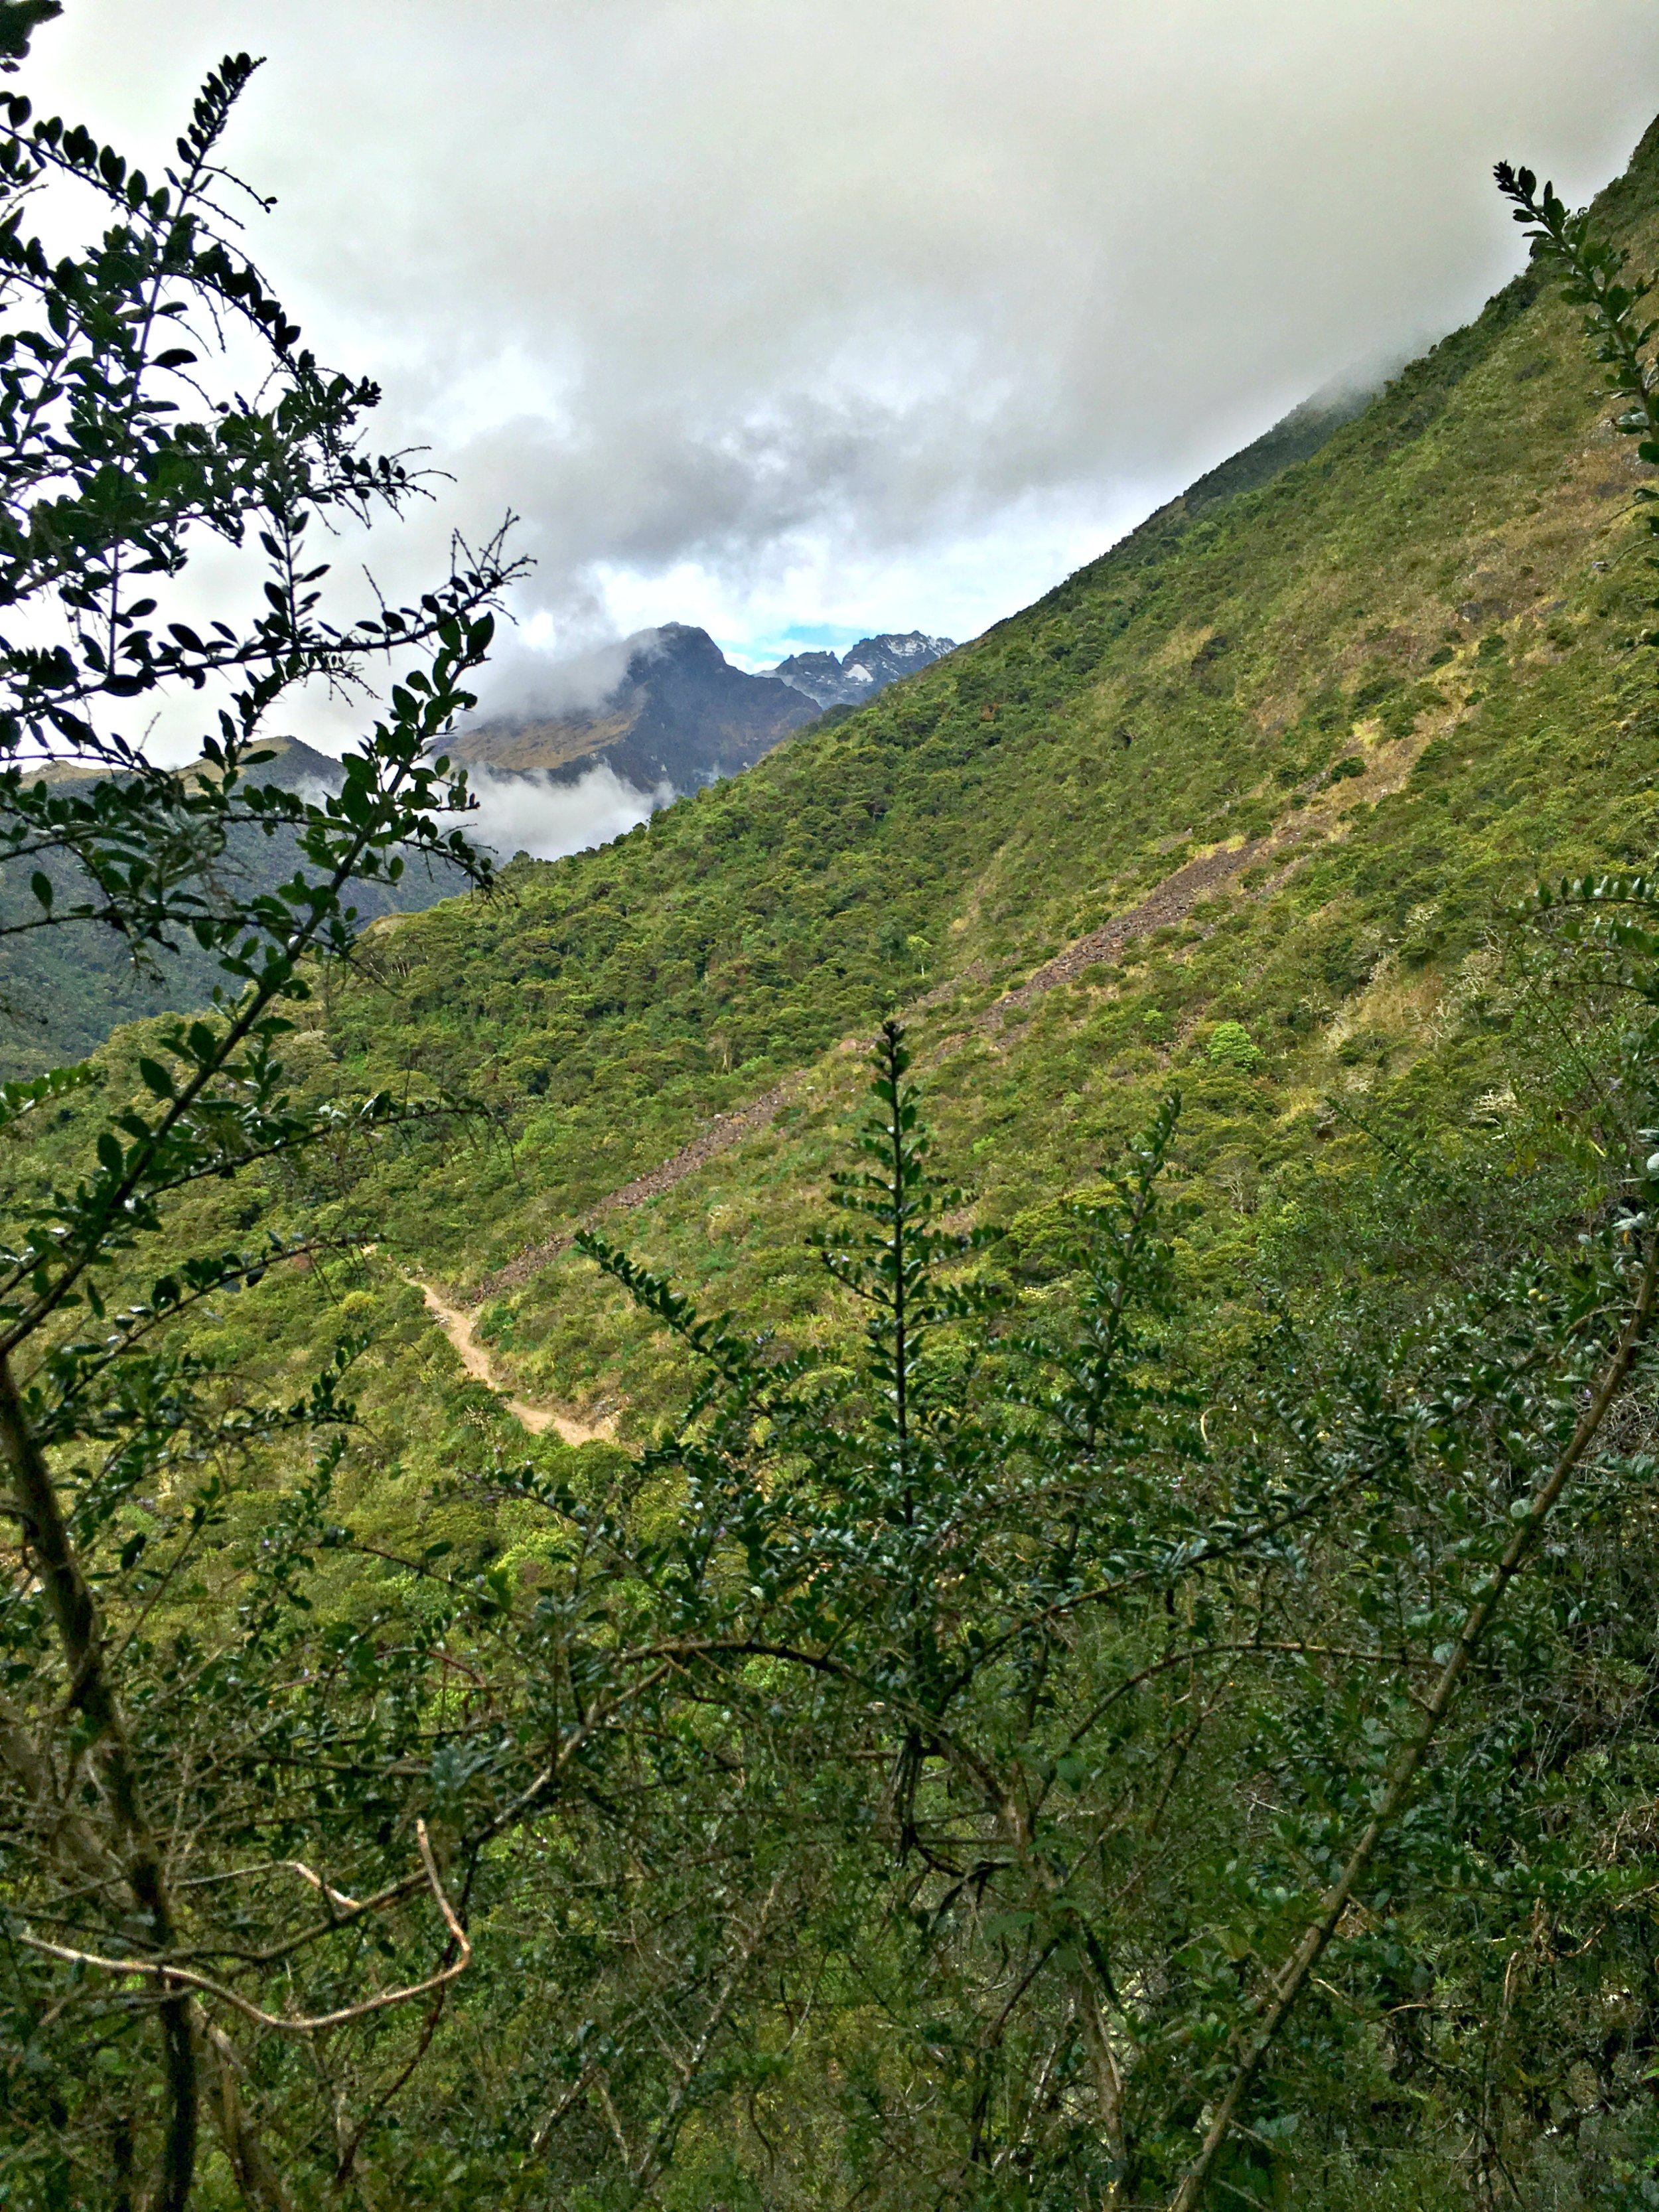 Glacial mountain, tundra, and jungle, all in a days work